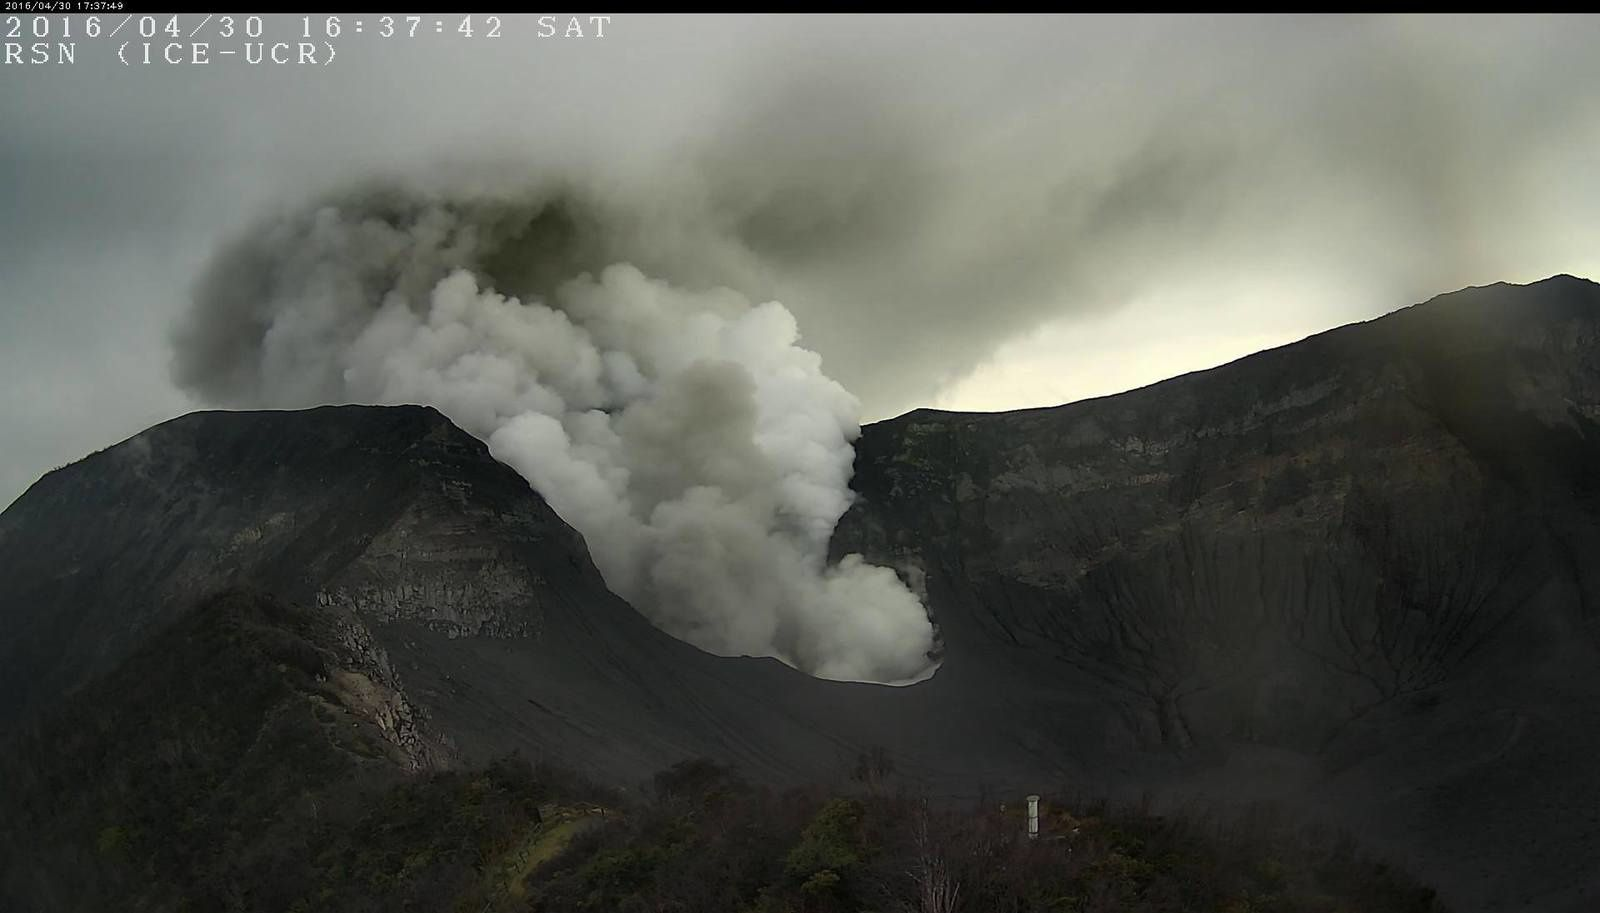 Turrialba - émissions du 30.04.2016 / 16h37 - webcam RSN